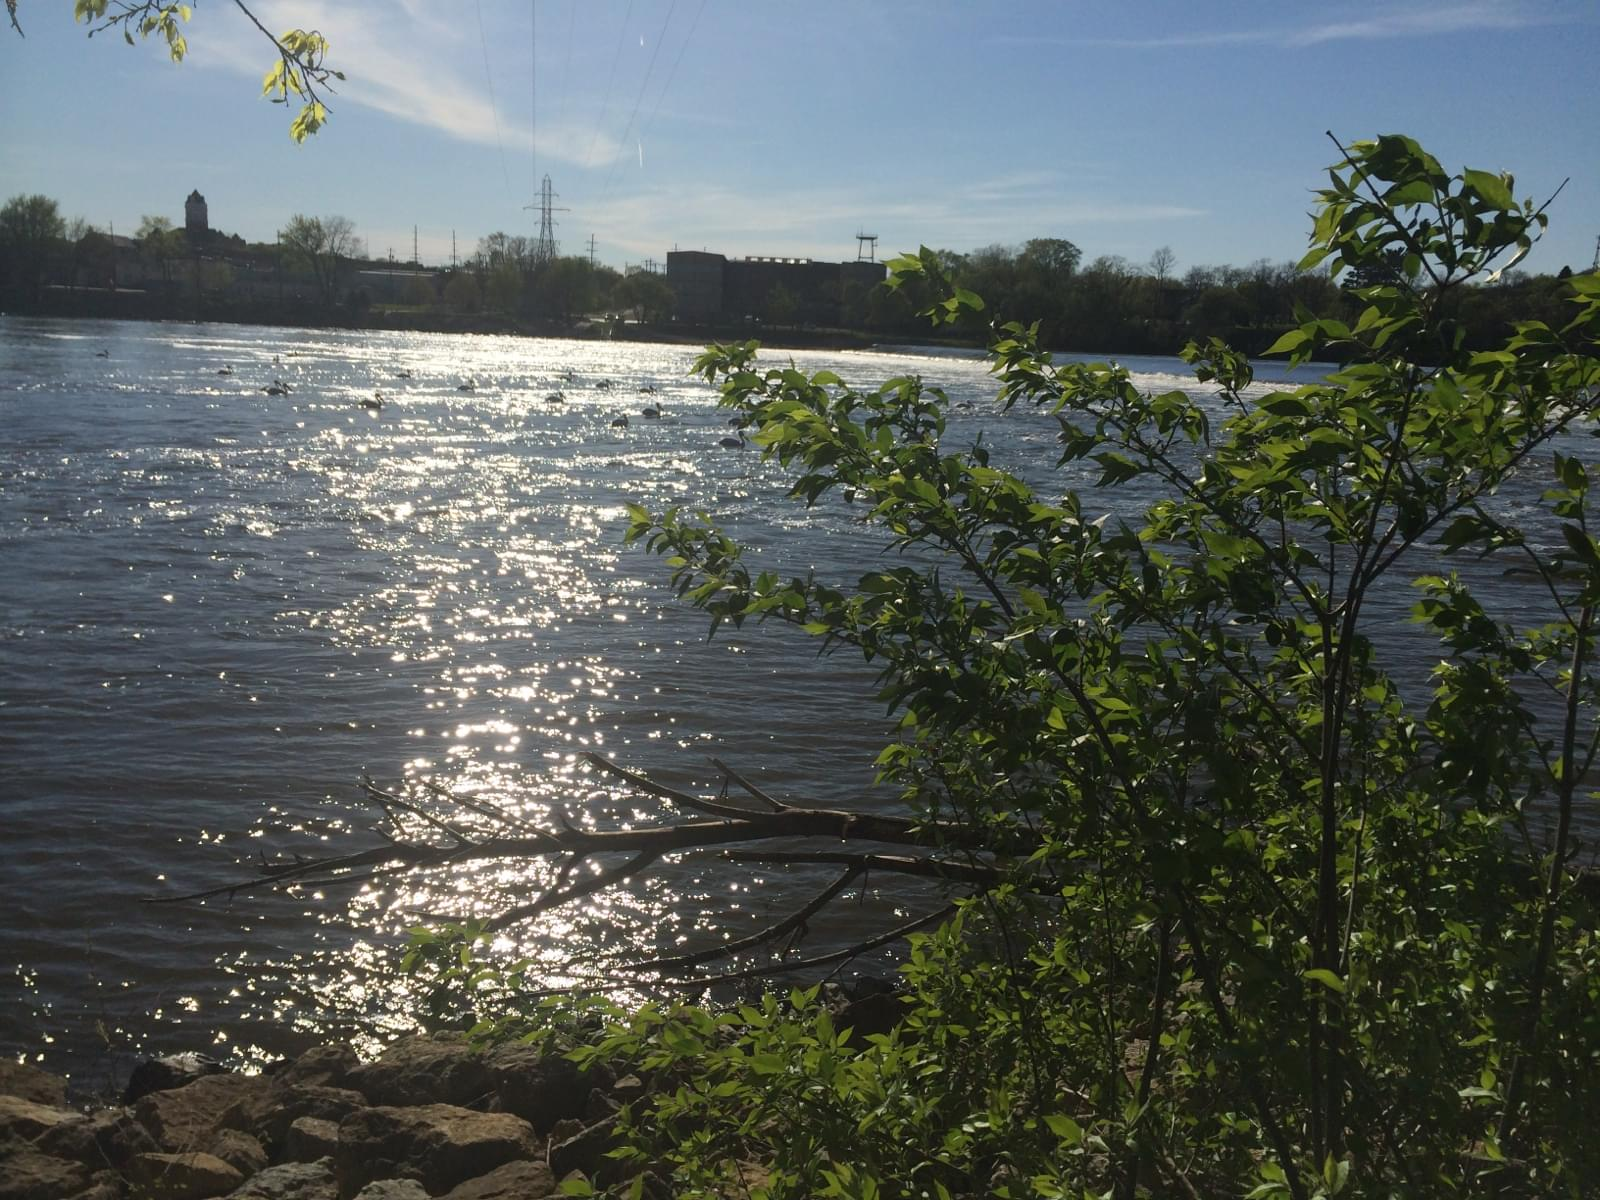 Ogle County Sheriff Implements No Wake on Rock River